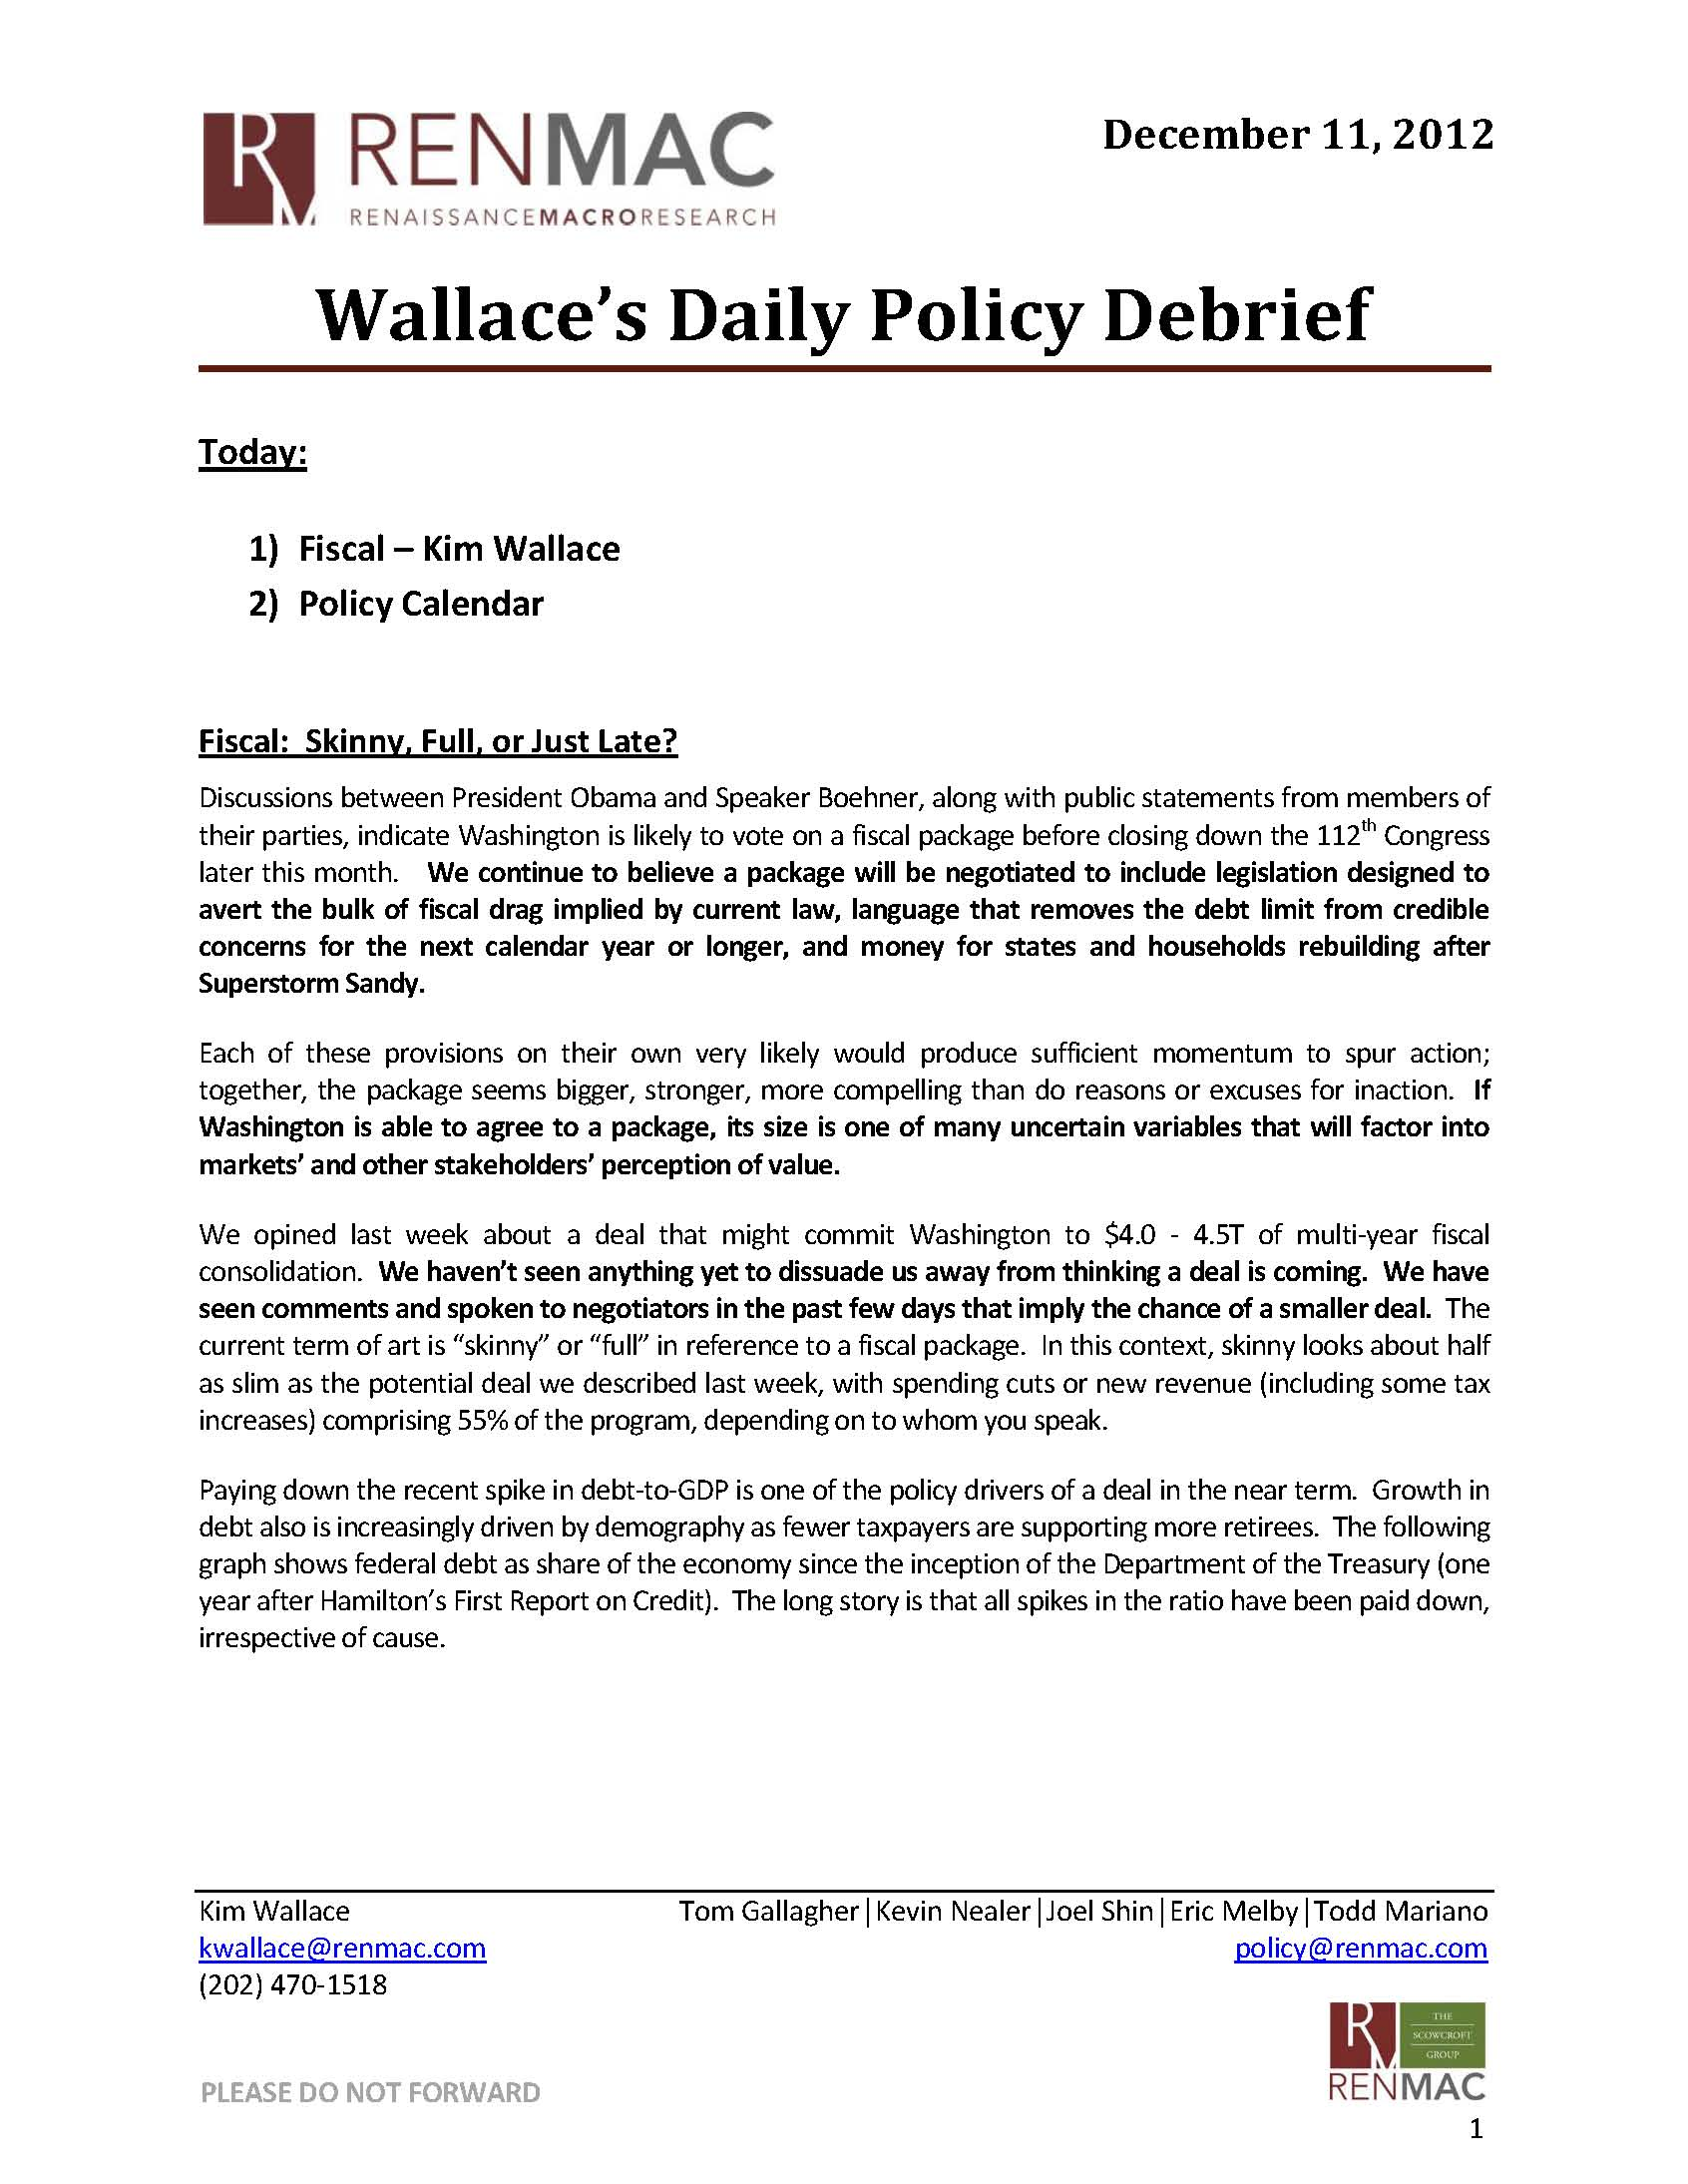 2012-12-11 WDPD_Page_1